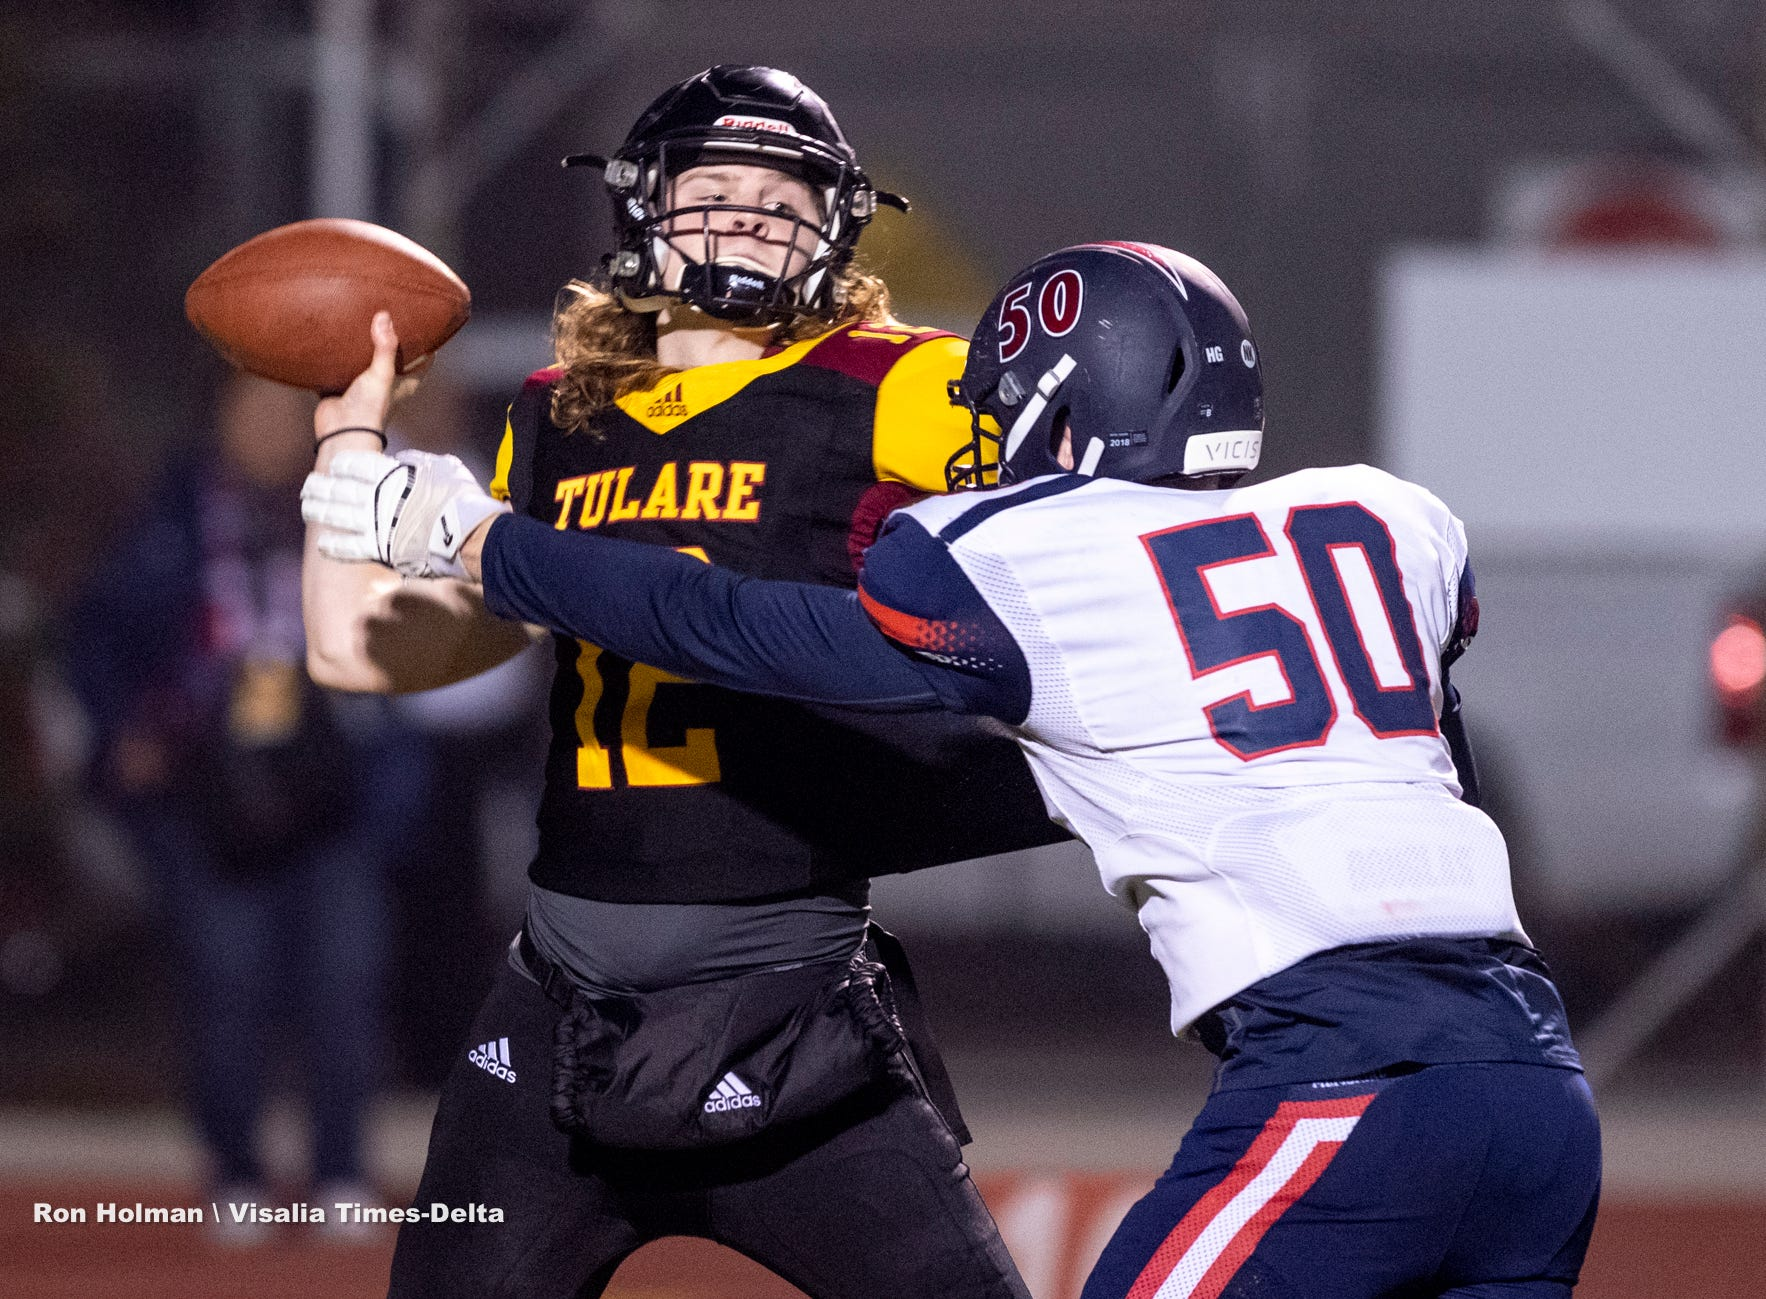 Tulare Union's Nathan Lamb passes under pressure from San Joaquin Memorial's Justin Hunt during a CIF State Northern California Division 2-A Regional Bowl Game at Mathias Stadium on Saturday, December 8, 2018.